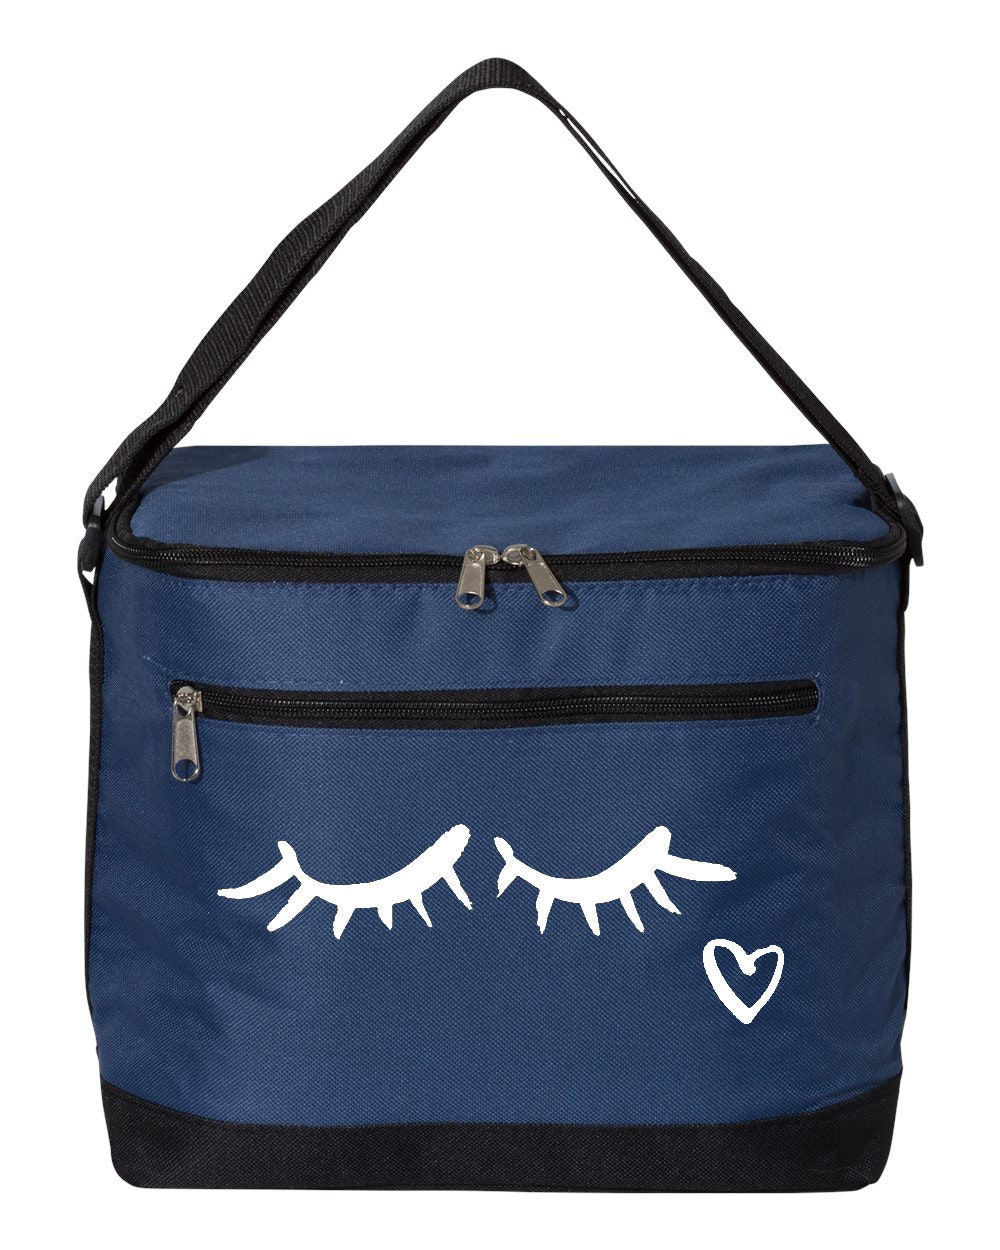 Liberty Bags 1695 customer review by Myles Kearns Great Lunch Box